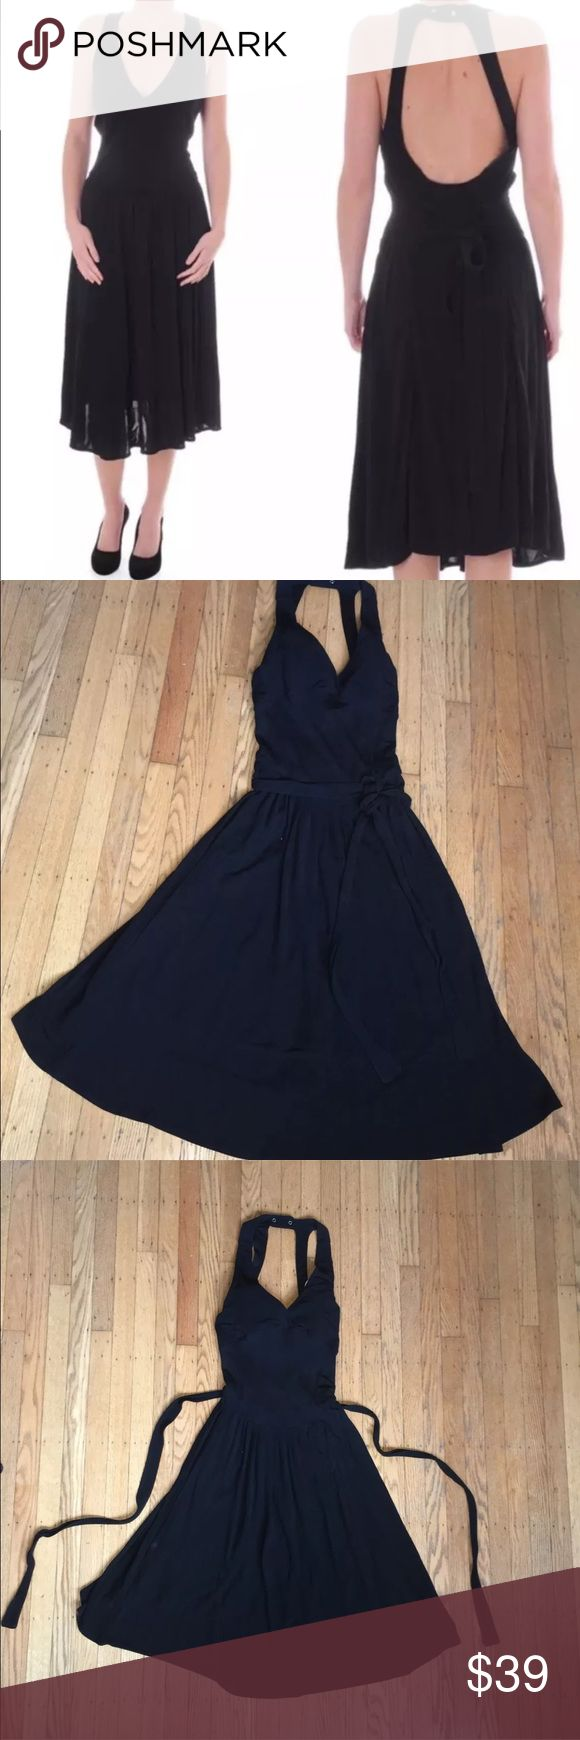 """Diesel Black Sleeveless Dress Size Medium Women's Diesel Dress  Size Medium  PreOwned Like New Condition  Solid black 100% Viscose  Lined  Cinched at Waist  Stretchy 100% Viscose  Functioning Hard Wear Snaps At Back Neck  Fixed Sash Can Be Tied Multiple Ways  Bust 30""""  Length 47""""  Waist 24""""  Thank You ! Diesel Dresses Midi"""